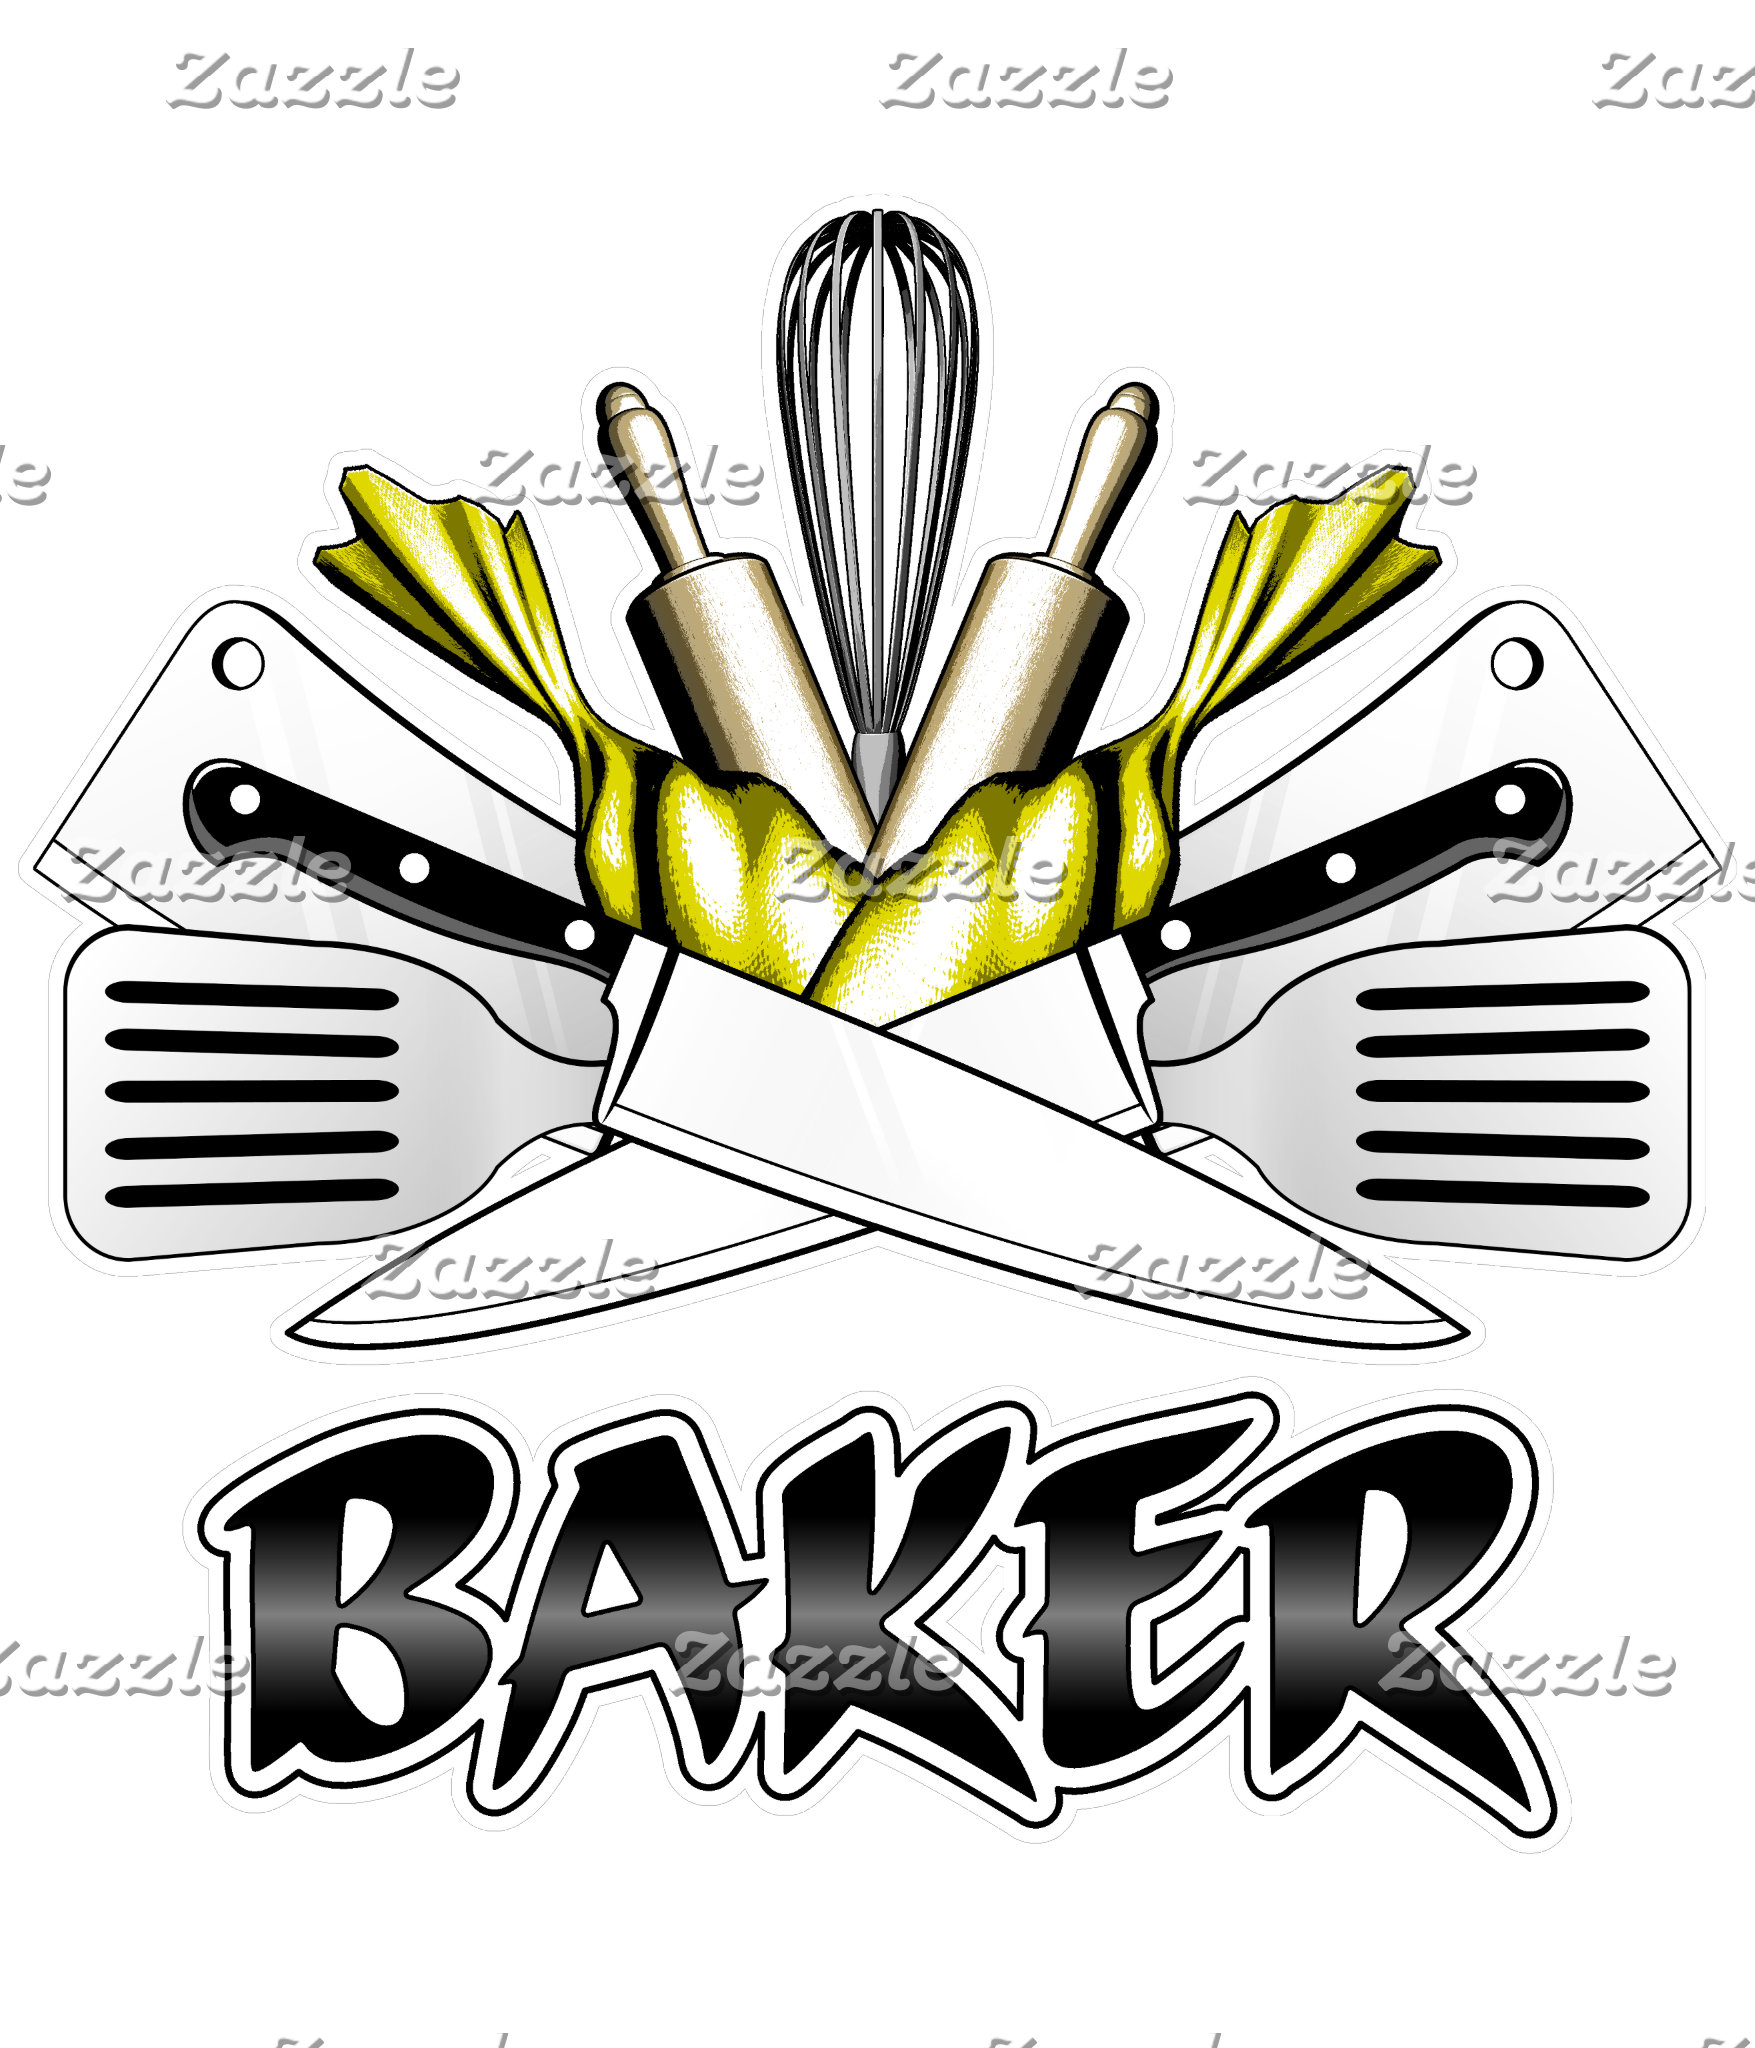 Baker: Cooking Utensils